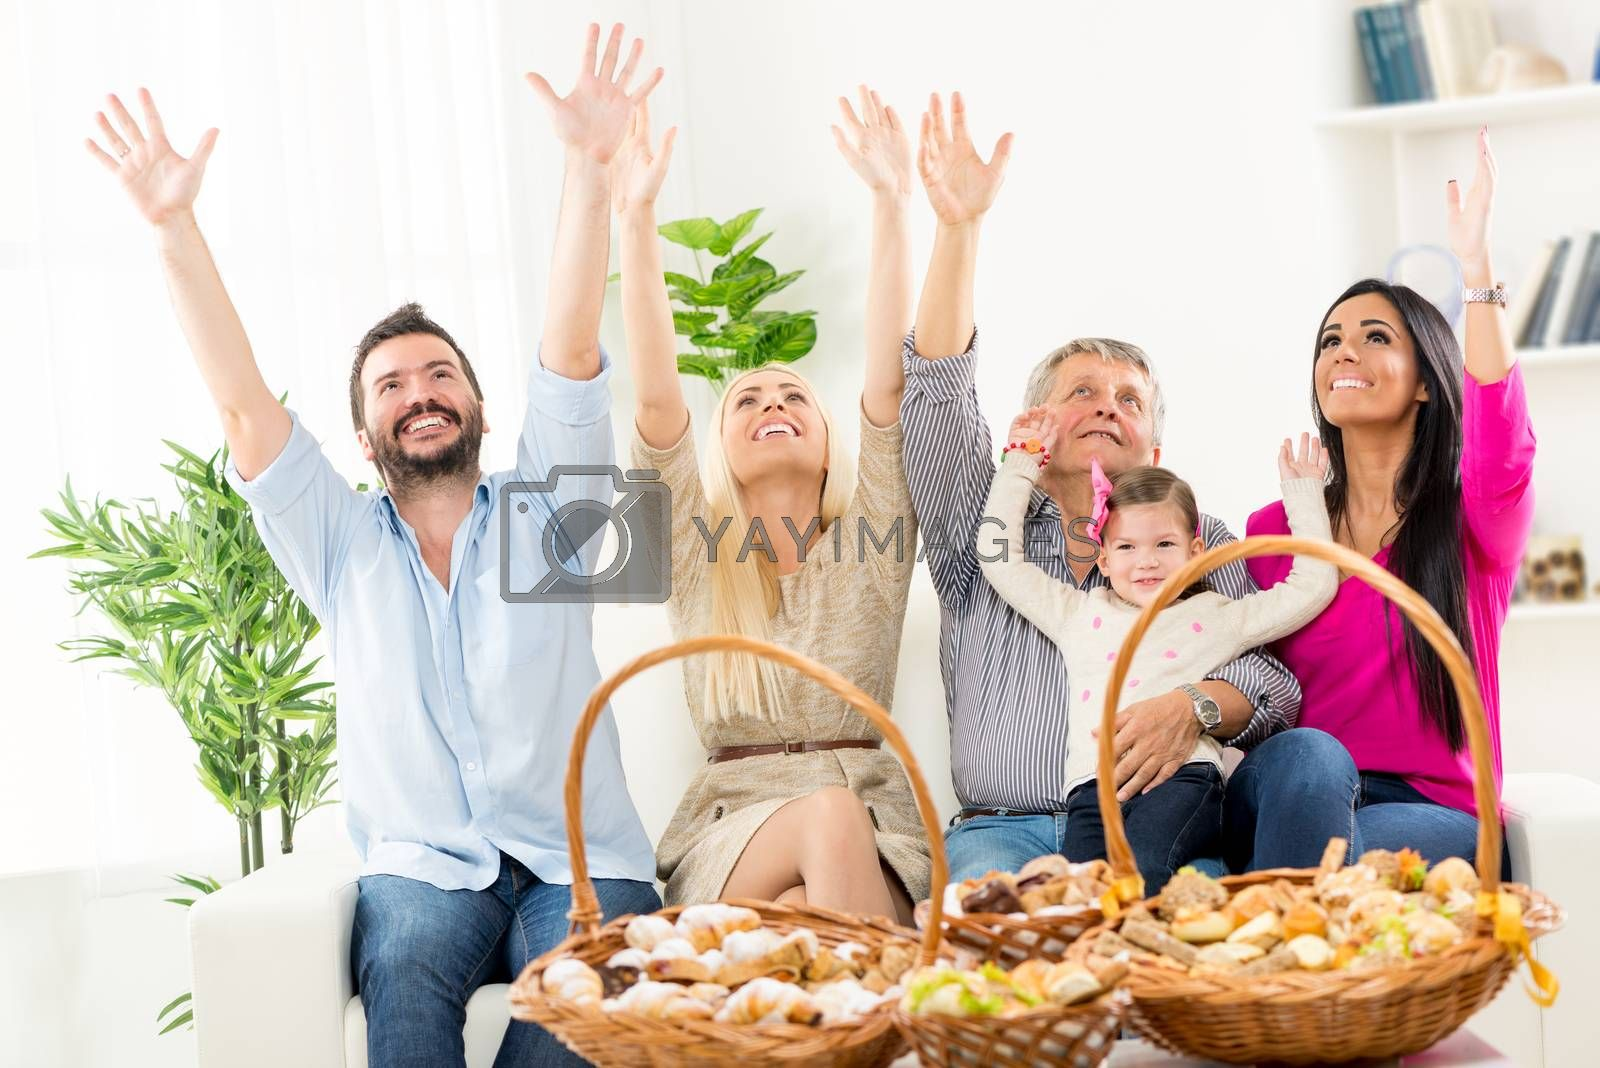 Happy family sitting on couch with arms raised, looking up. In front of them on the table are woven baskets decorated with beautiful pastries.